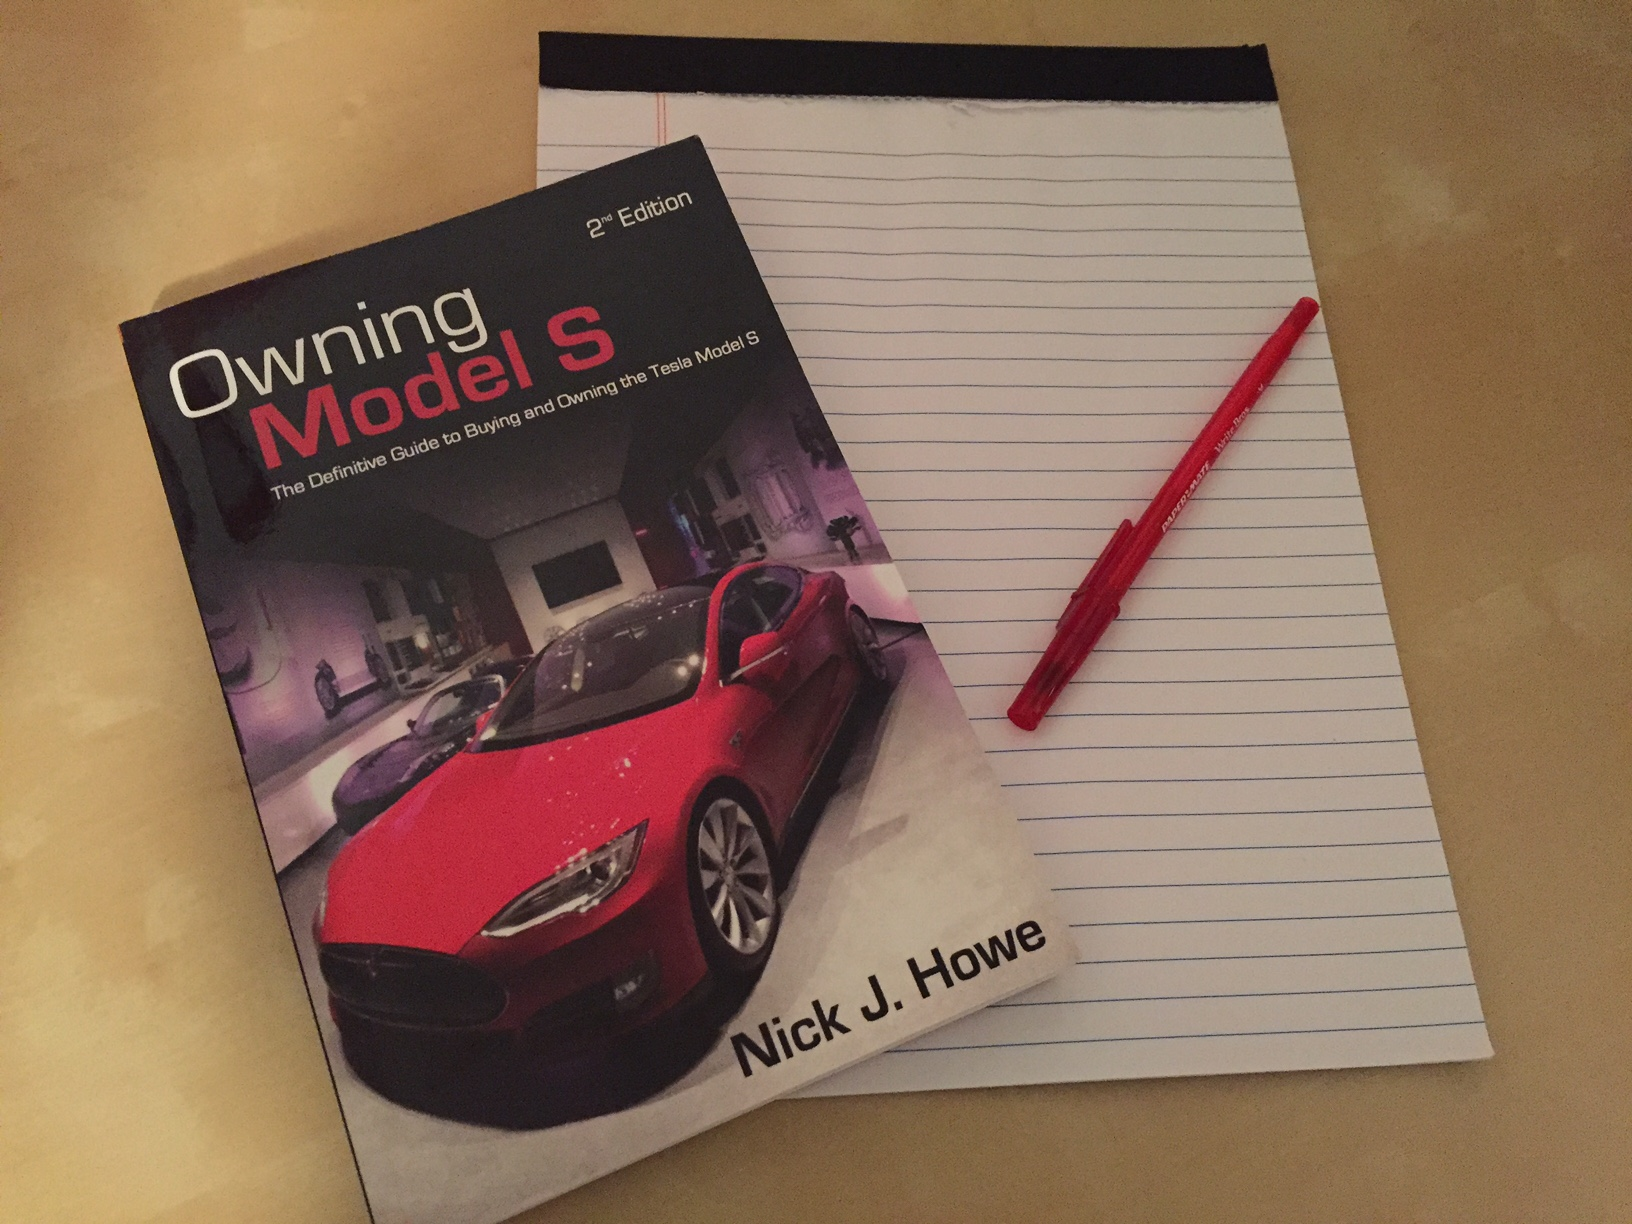 Owning Model S 2nd Edition